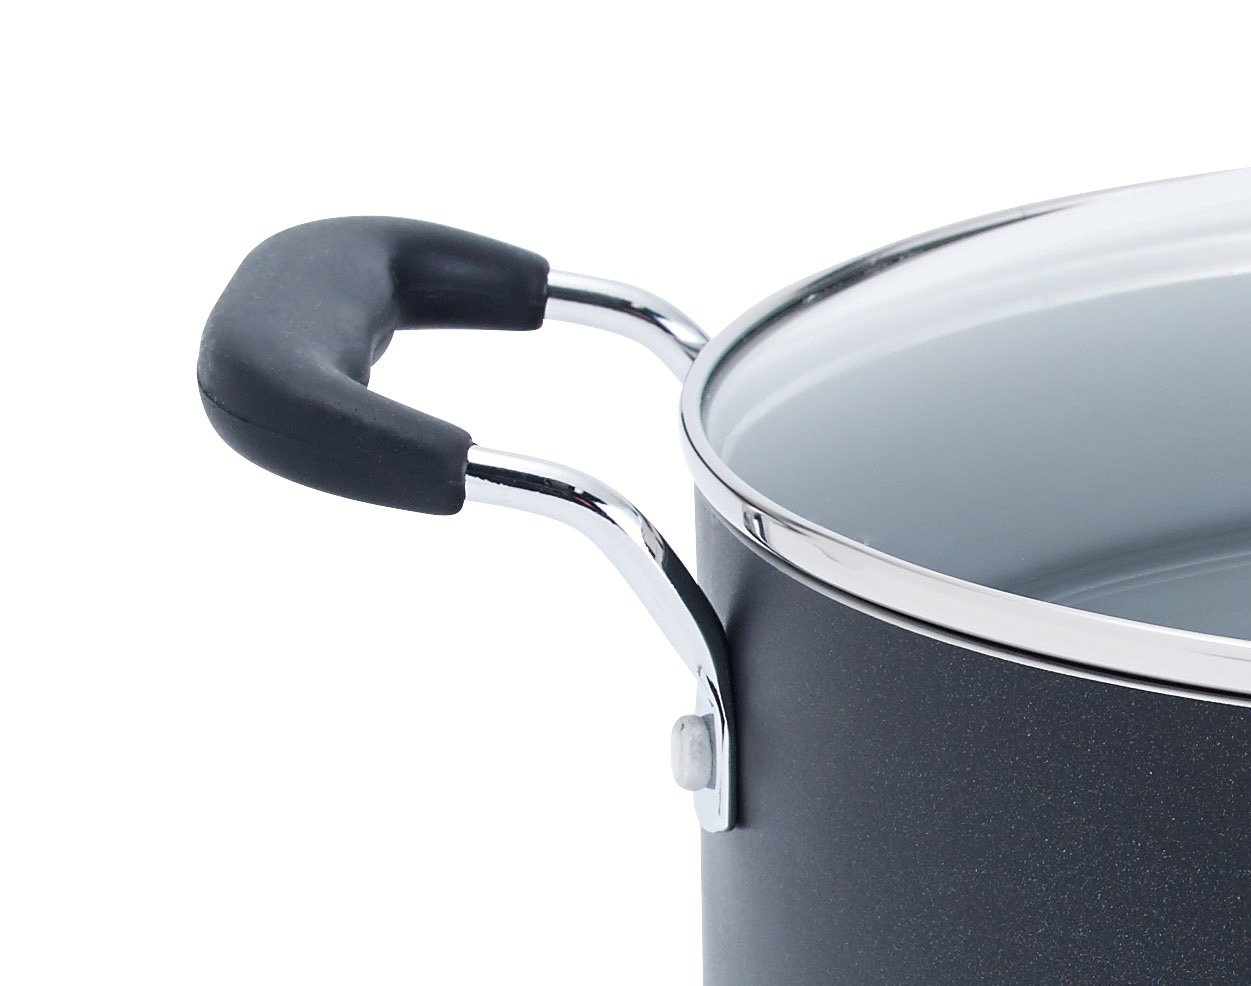 T-fal B36262 Specialty Total Nonstick Dishwasher Safe Oven Safe Stockpot Cookware, 12-Quart, Black by T-fal (Image #3)